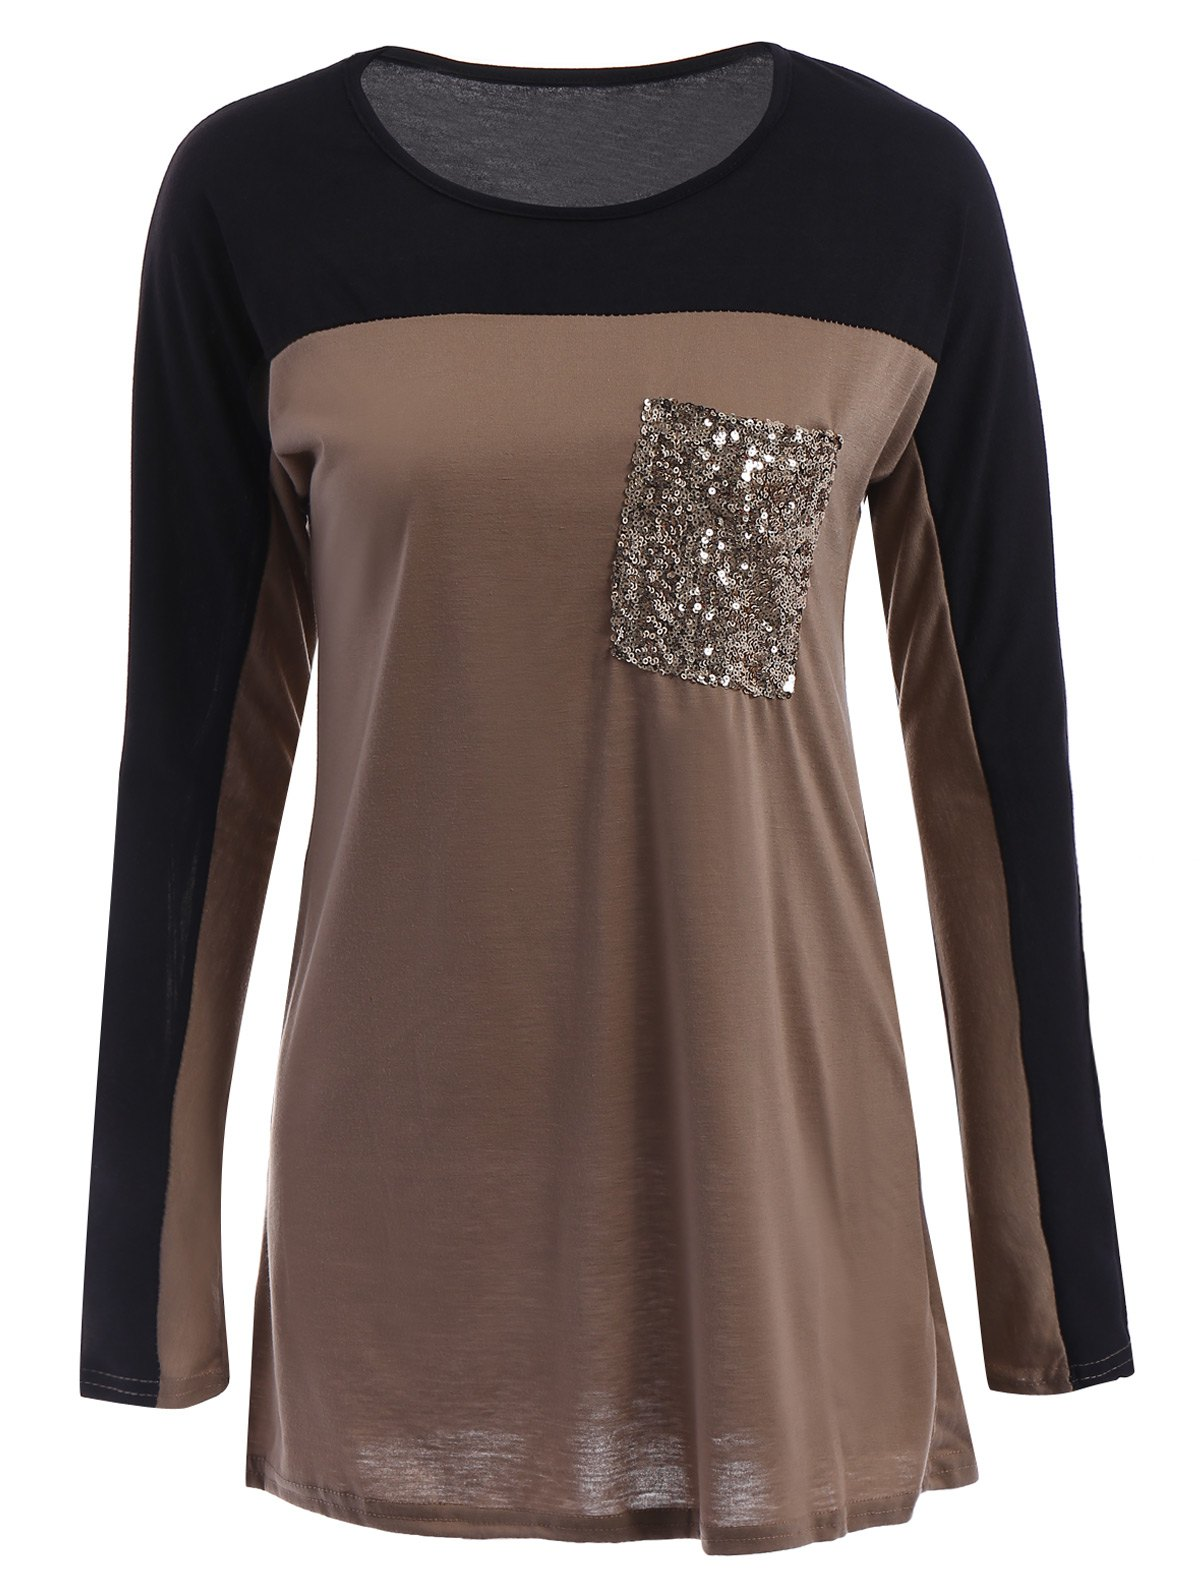 Stylish Sequined Scoop Neck Long Sleeve T-Shirt - KHAKI L